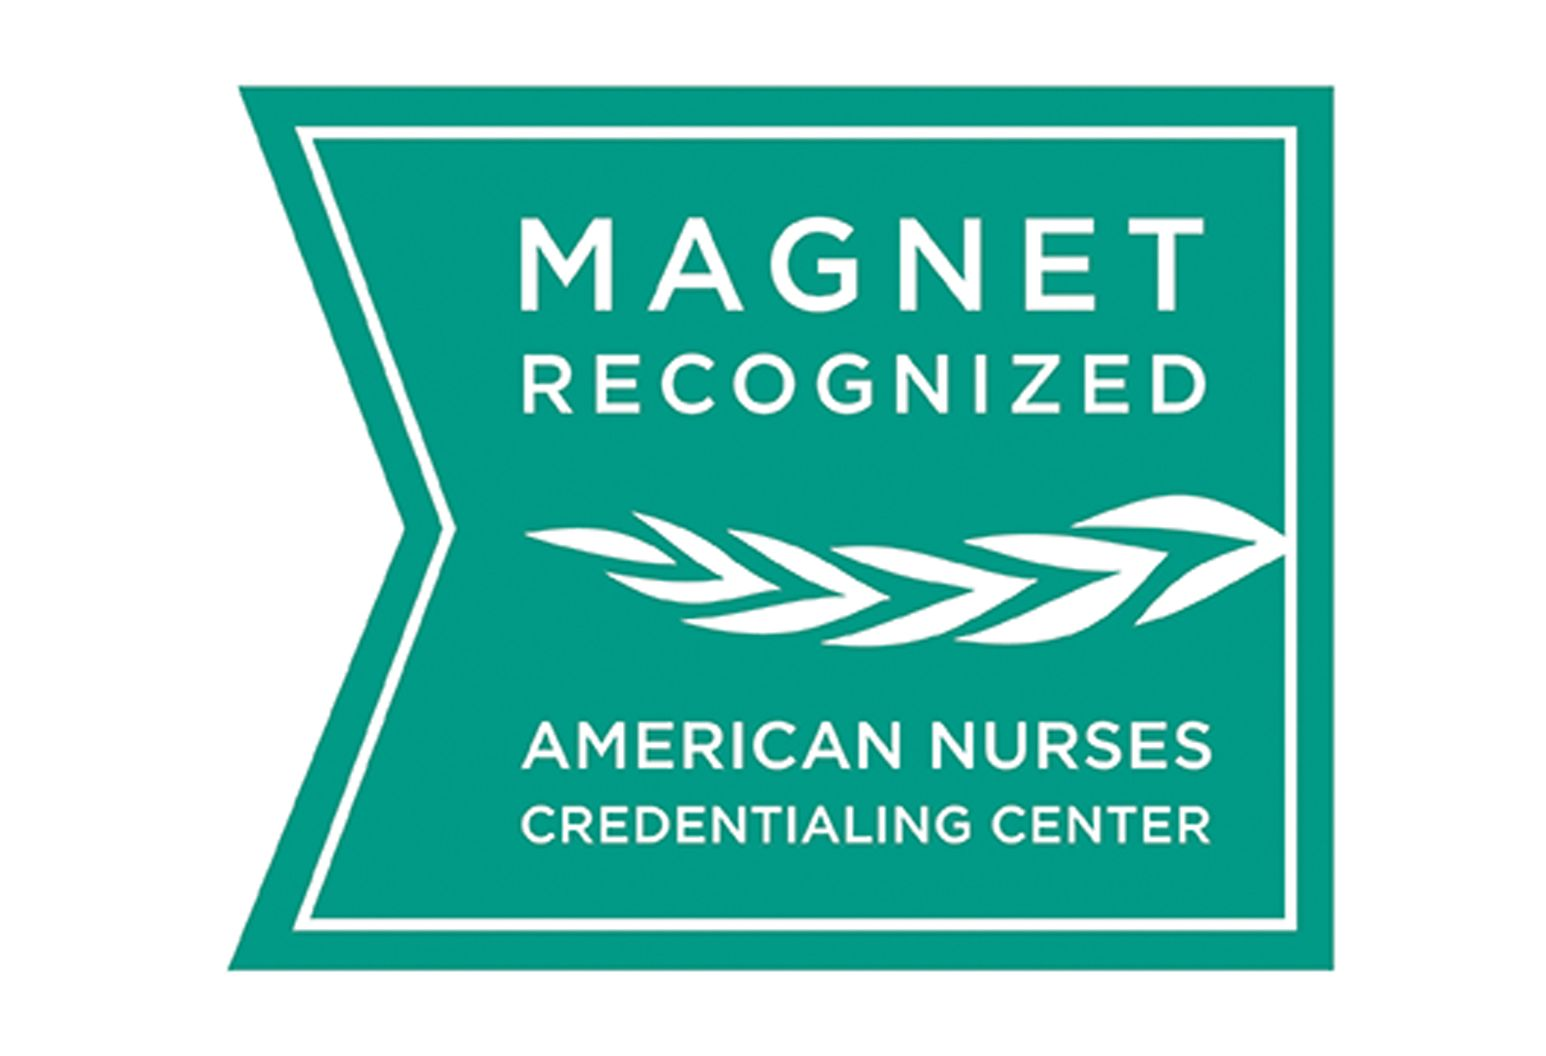 Green and white Magnet Recognized logo American Nurses Credentialing Center